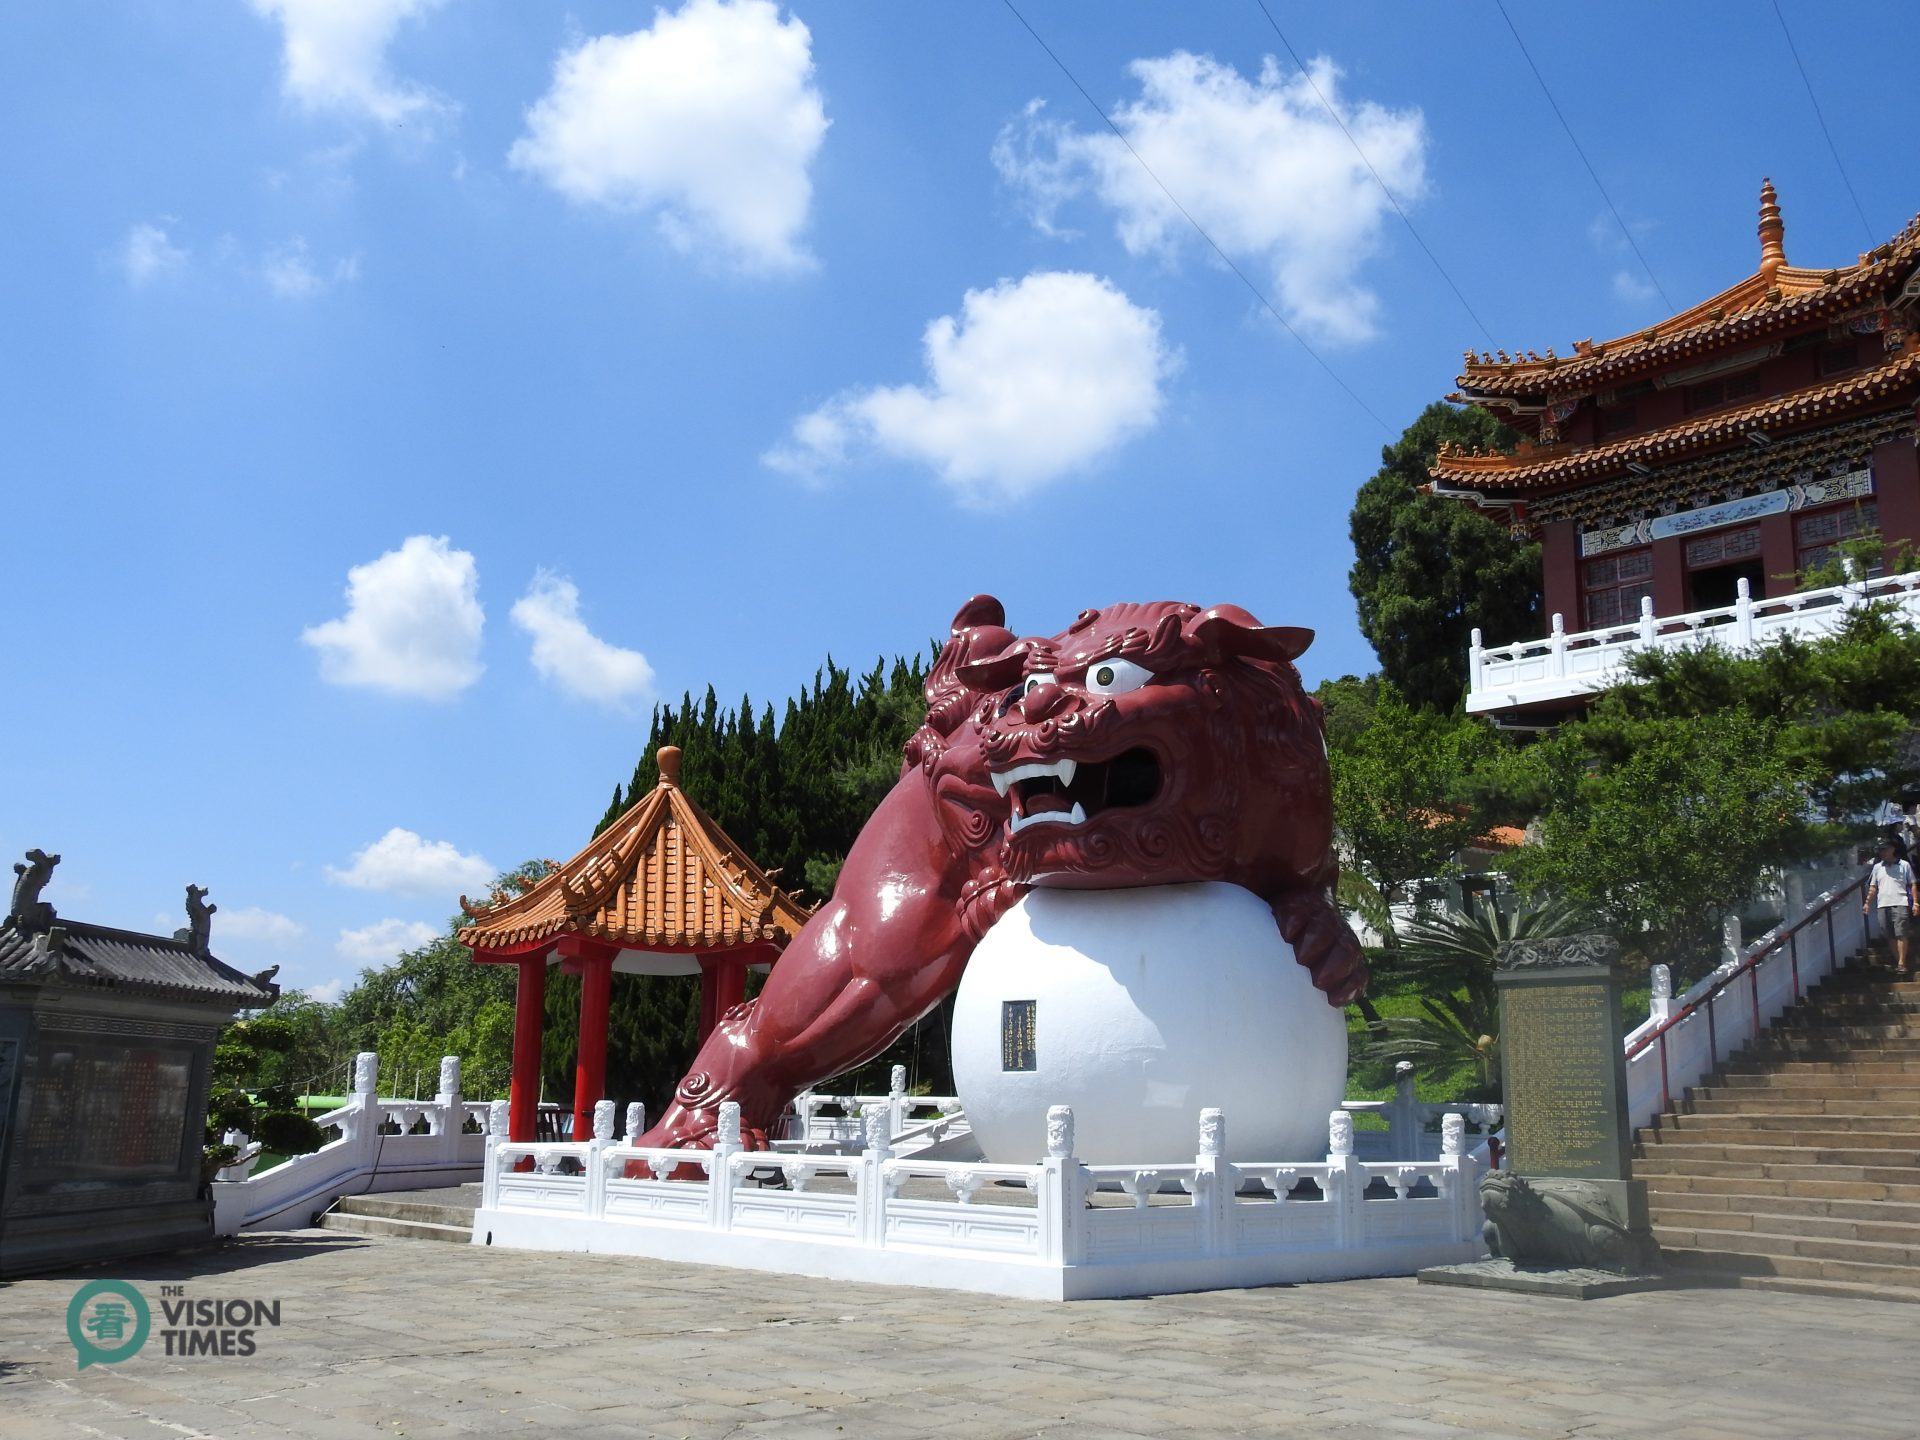 There are two giant Chinese guardian lions on the two sides of Wenwu Temple (Image: Billy Shyu / Vision Times)